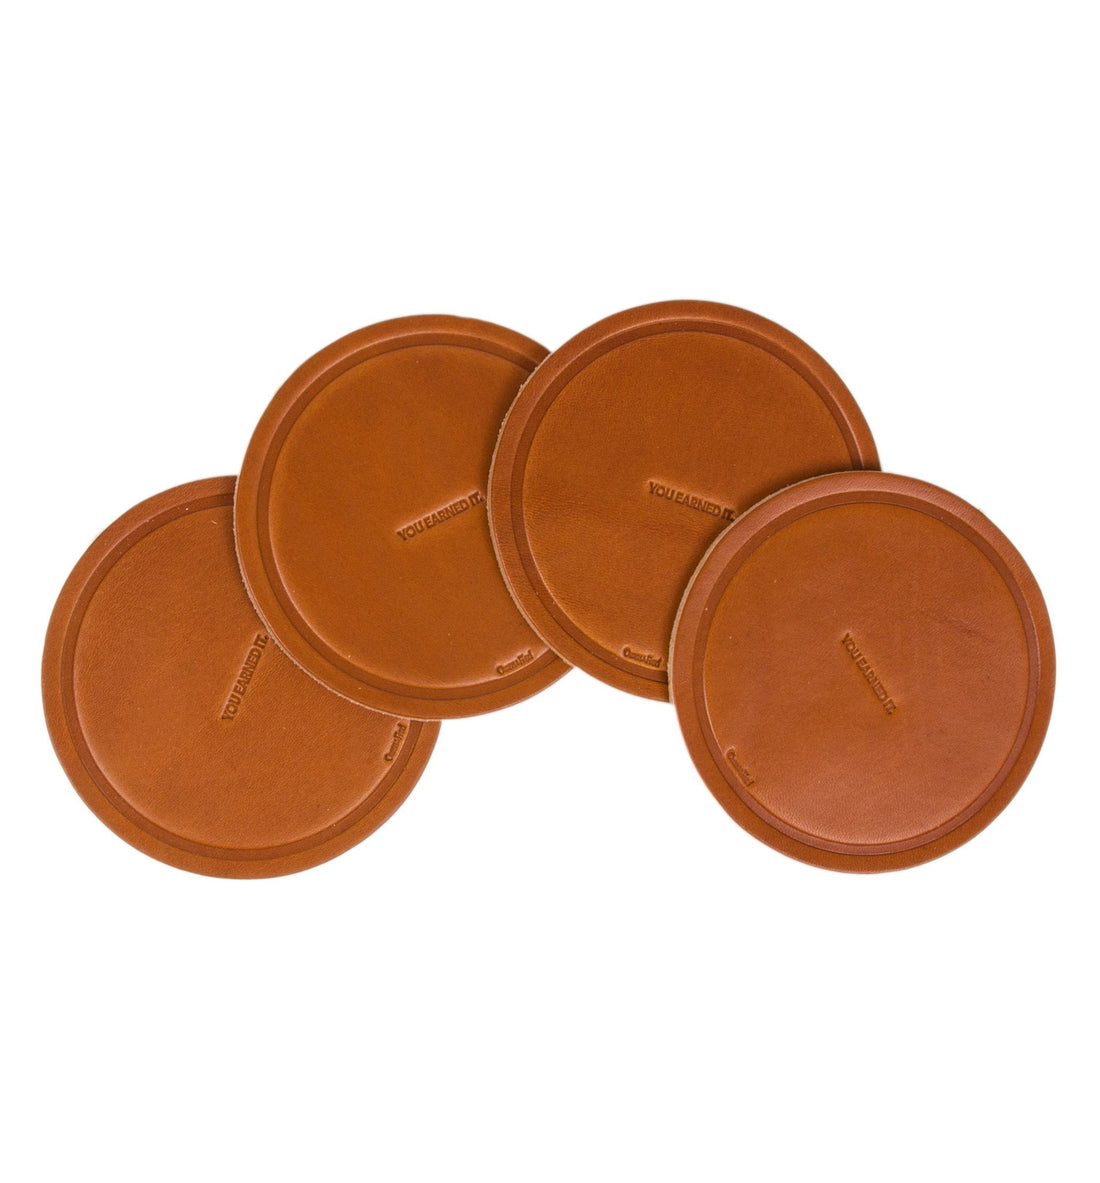 Owen & Fred You Earned It Leather Coaster - Set of Four - Houseware - Iron and Resin